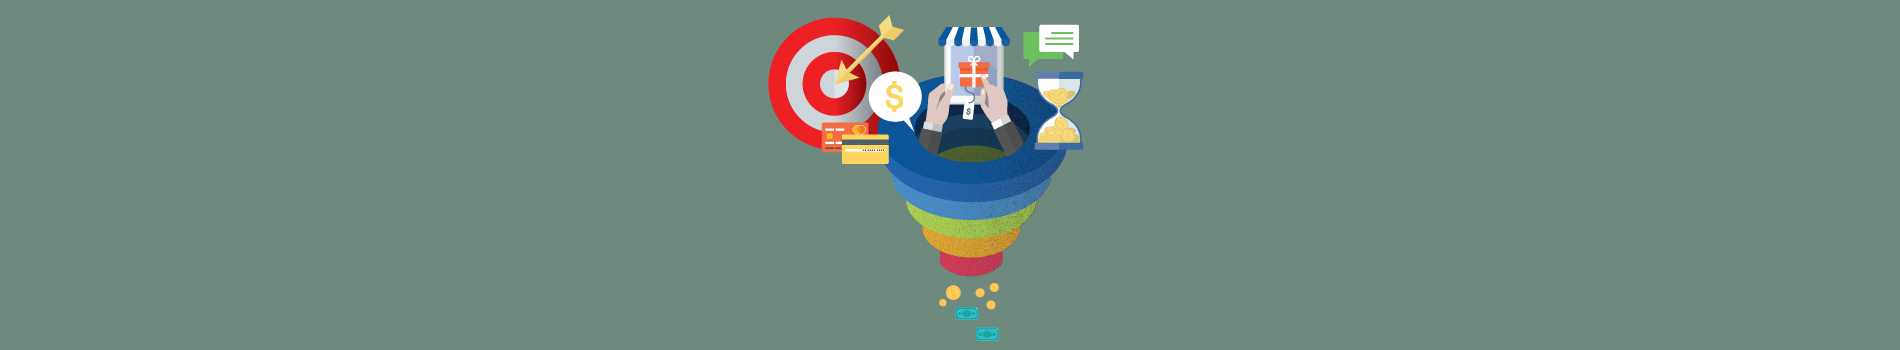 Graphic design of sales funnel with different kinds of payments being made at top